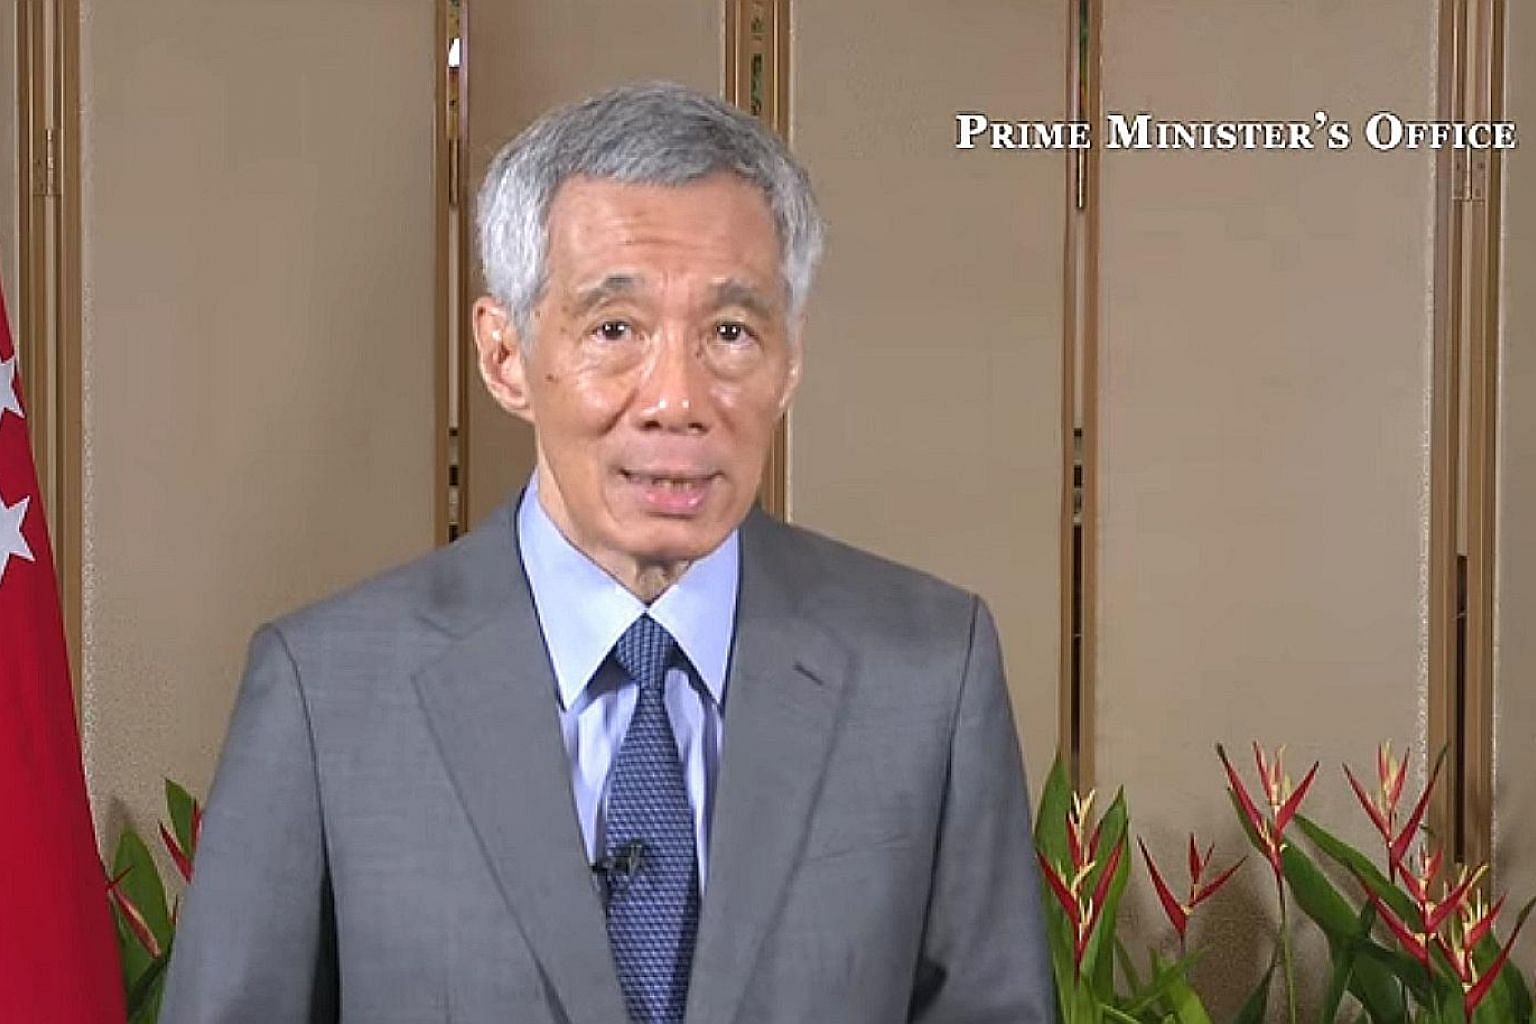 """At a virtual summit last Saturday, Prime Minister Lee Hsien Loong emphasised the importance of """"vaccine multilateralism"""". PHOTO: LEE HSIEN LOONG/FACEBOOK"""